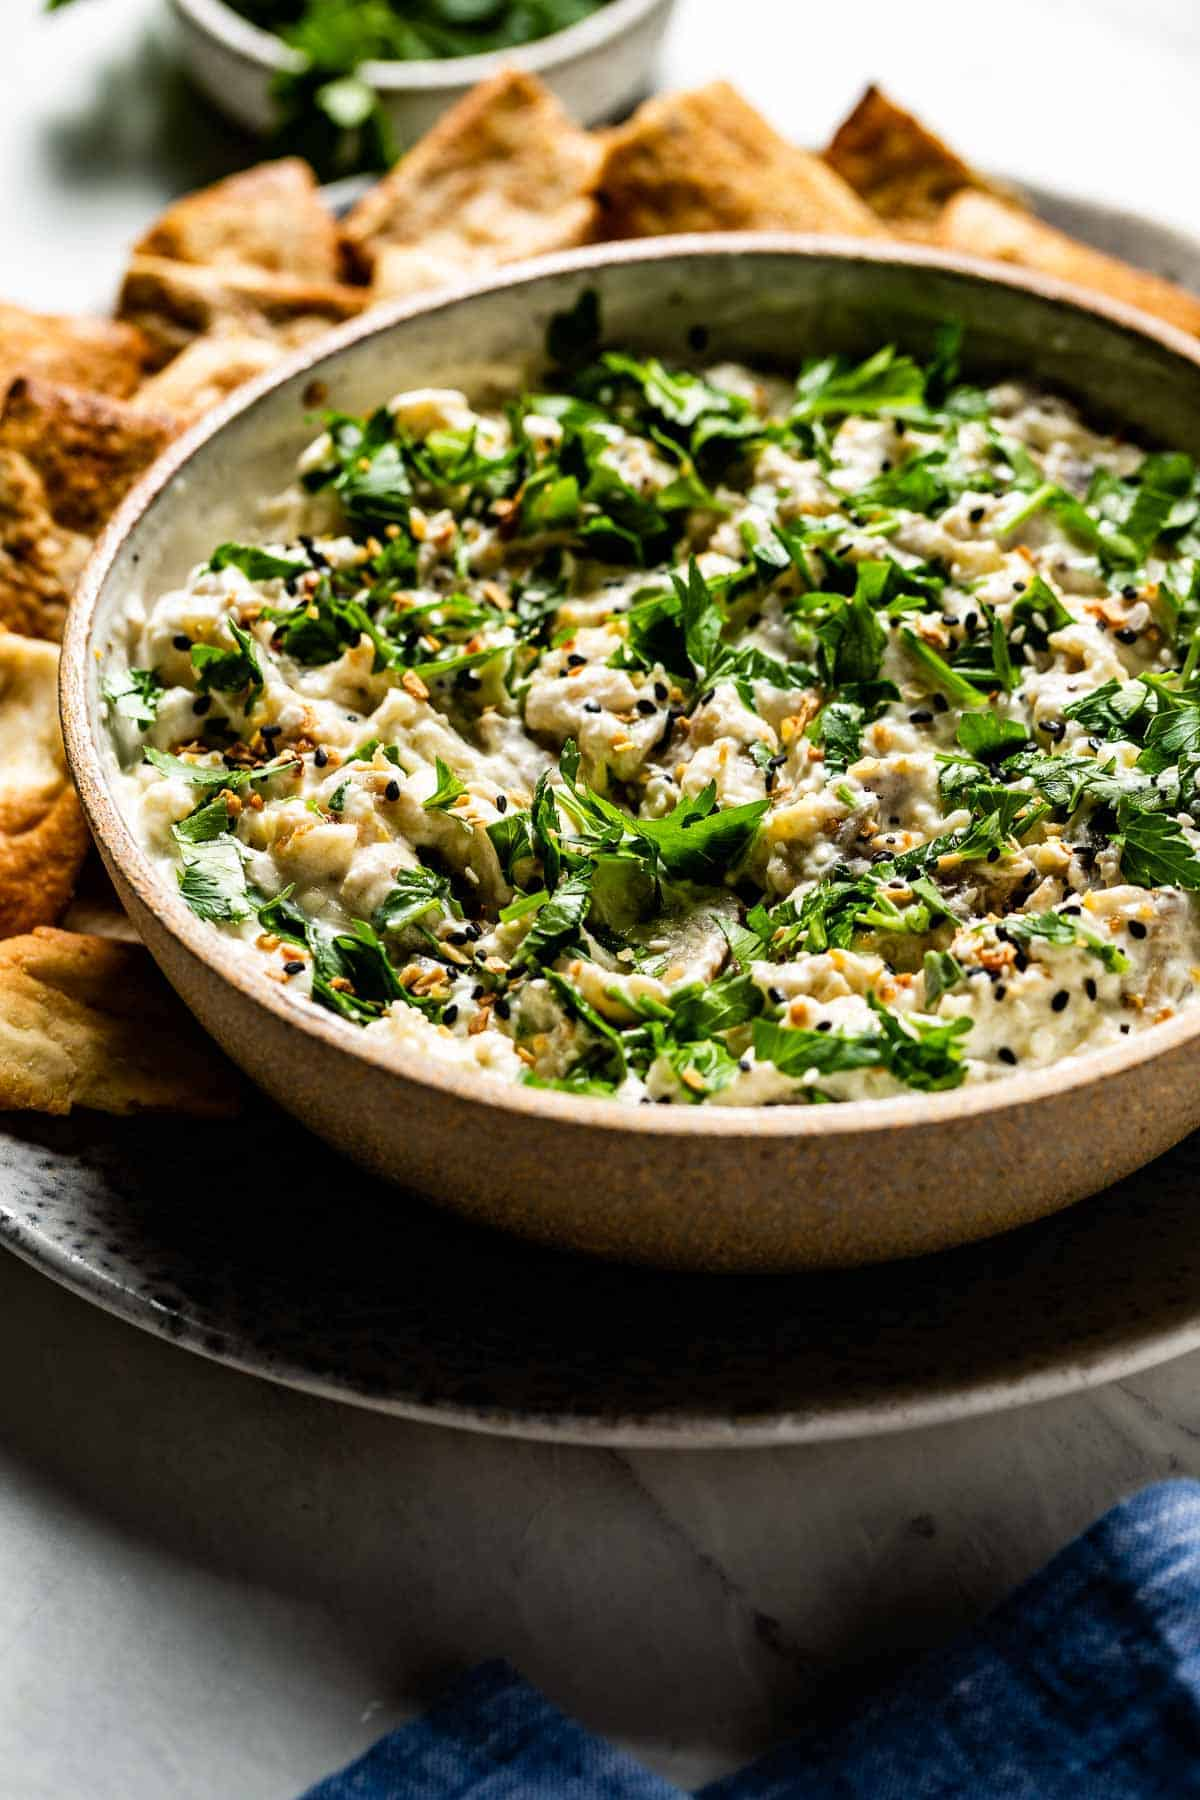 Turkish Eggplant Dip on a plate with chopped parsley on top